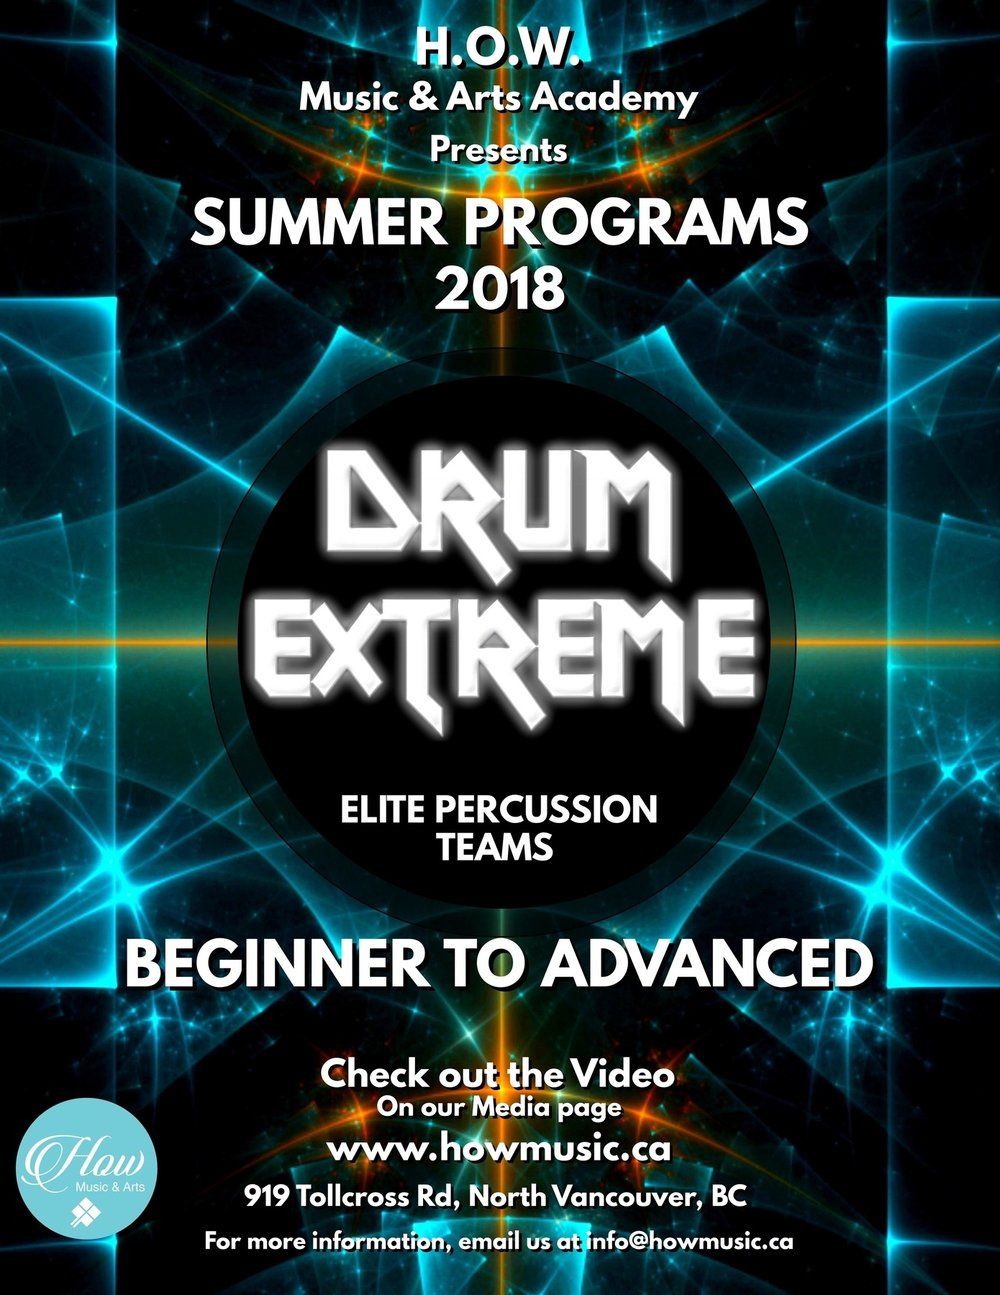 how-music-and-arts-drum-extreme-summer-2018.jpg